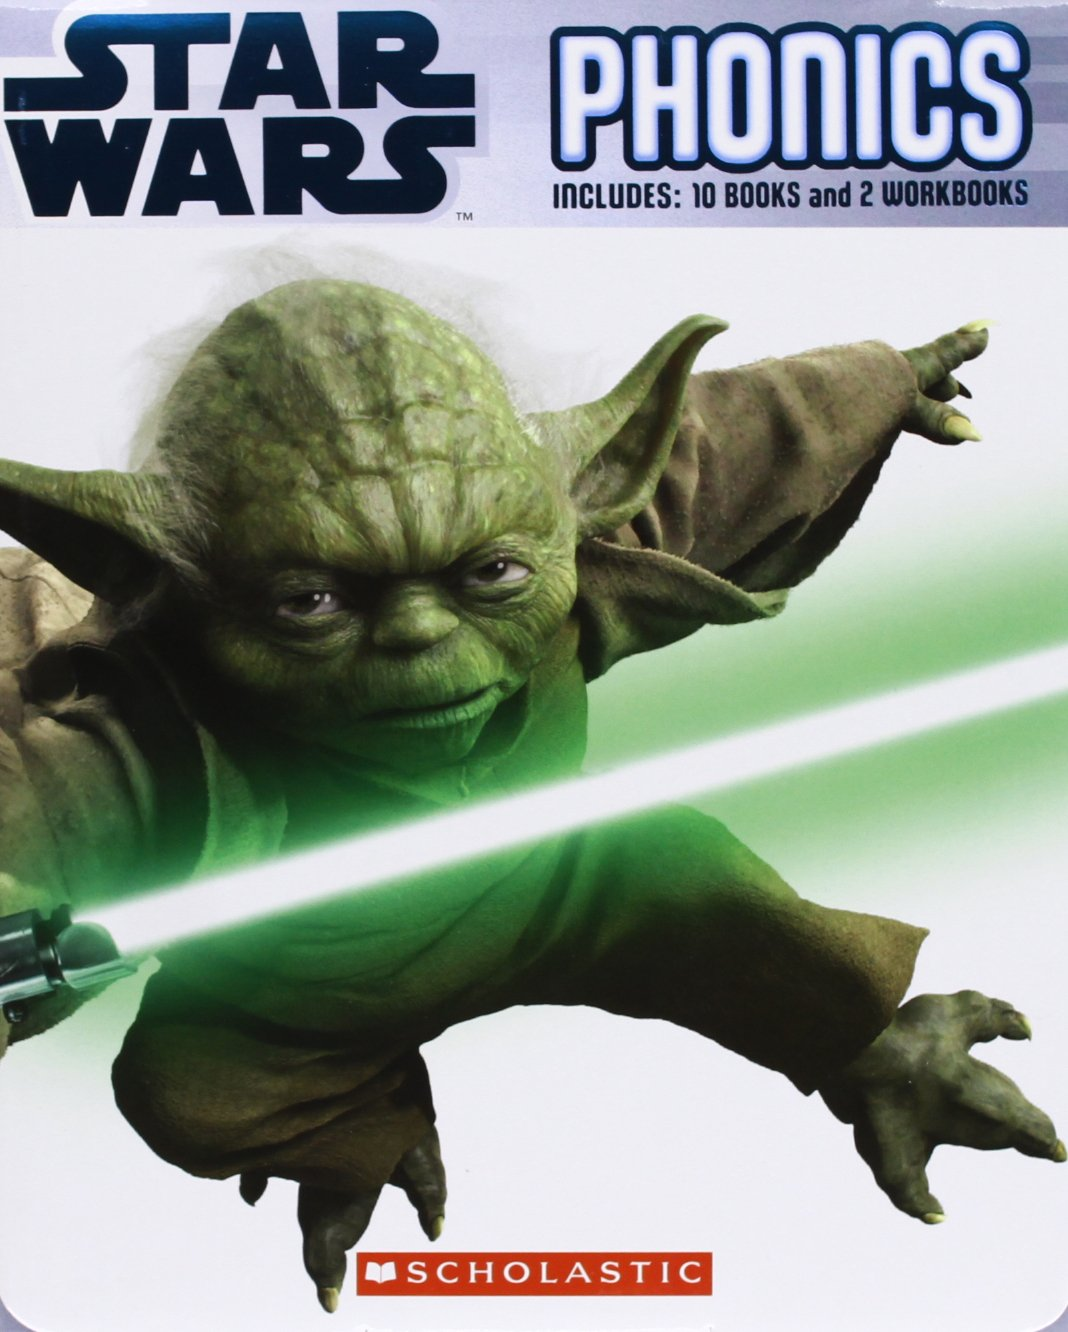 Star Wars Phonics Pack 2: Includes 10 Books and 2 Workbooks